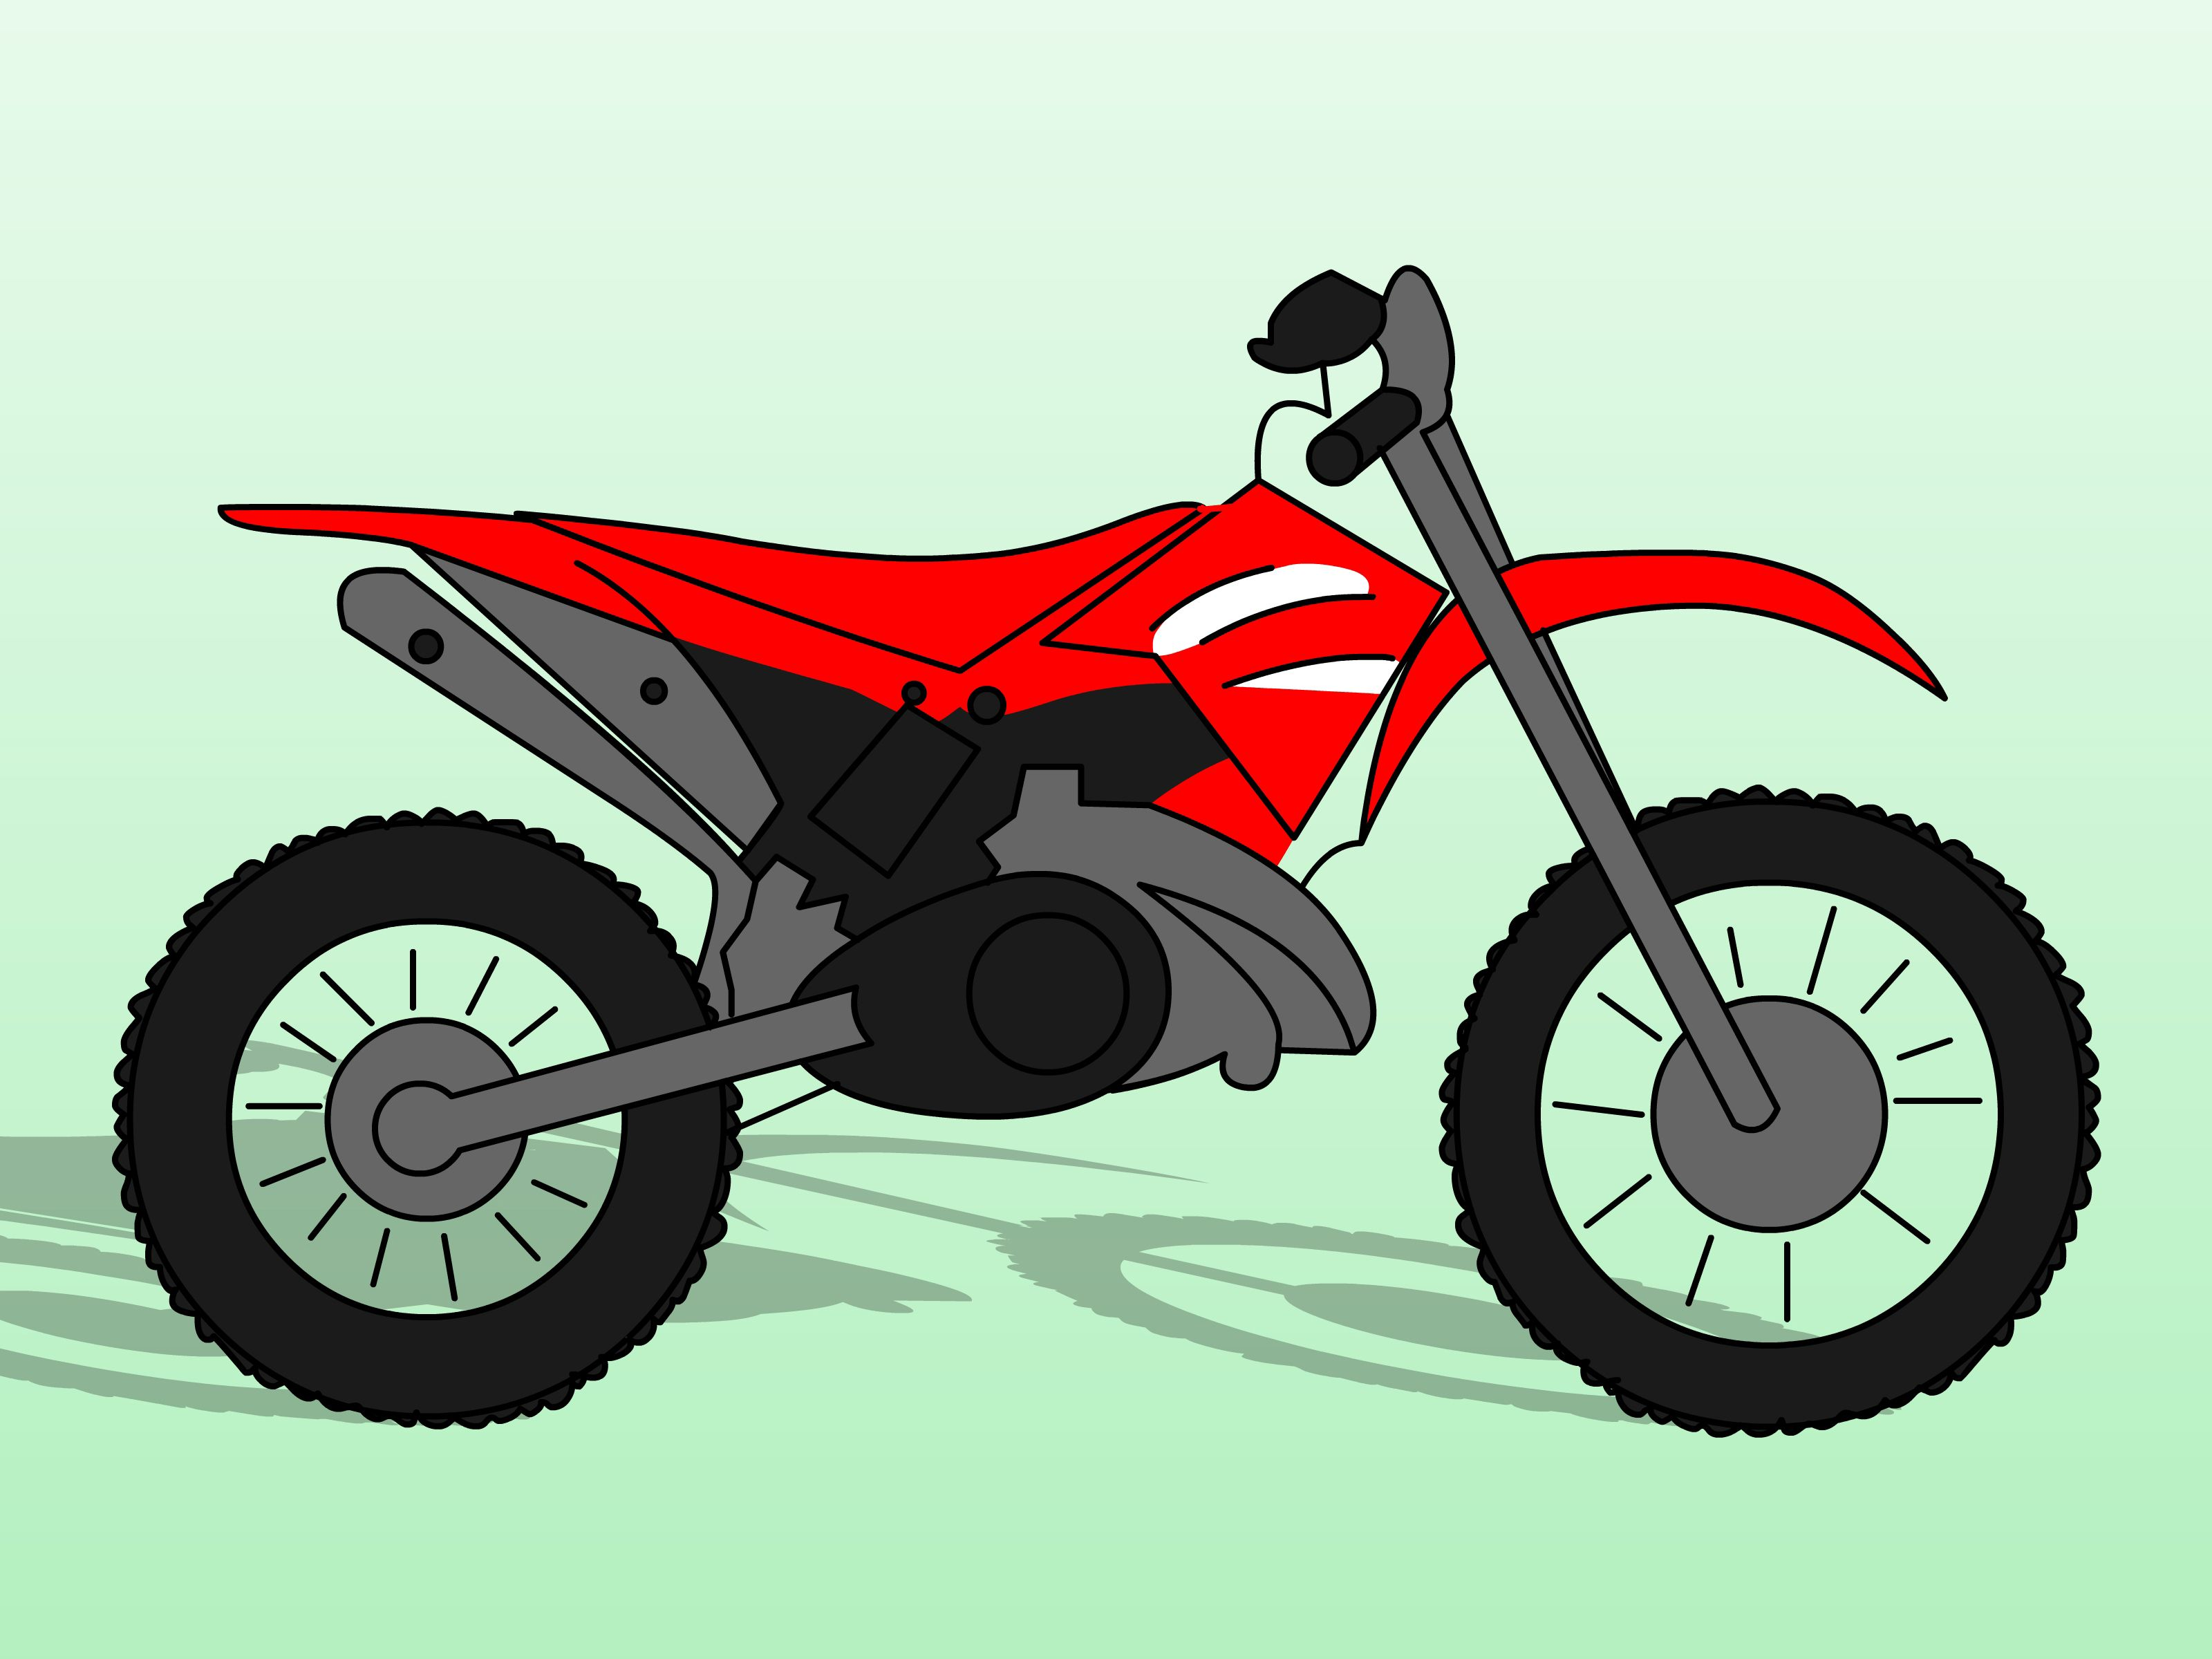 Motorcycle clipart red dirt. Draw bikes cakes bike